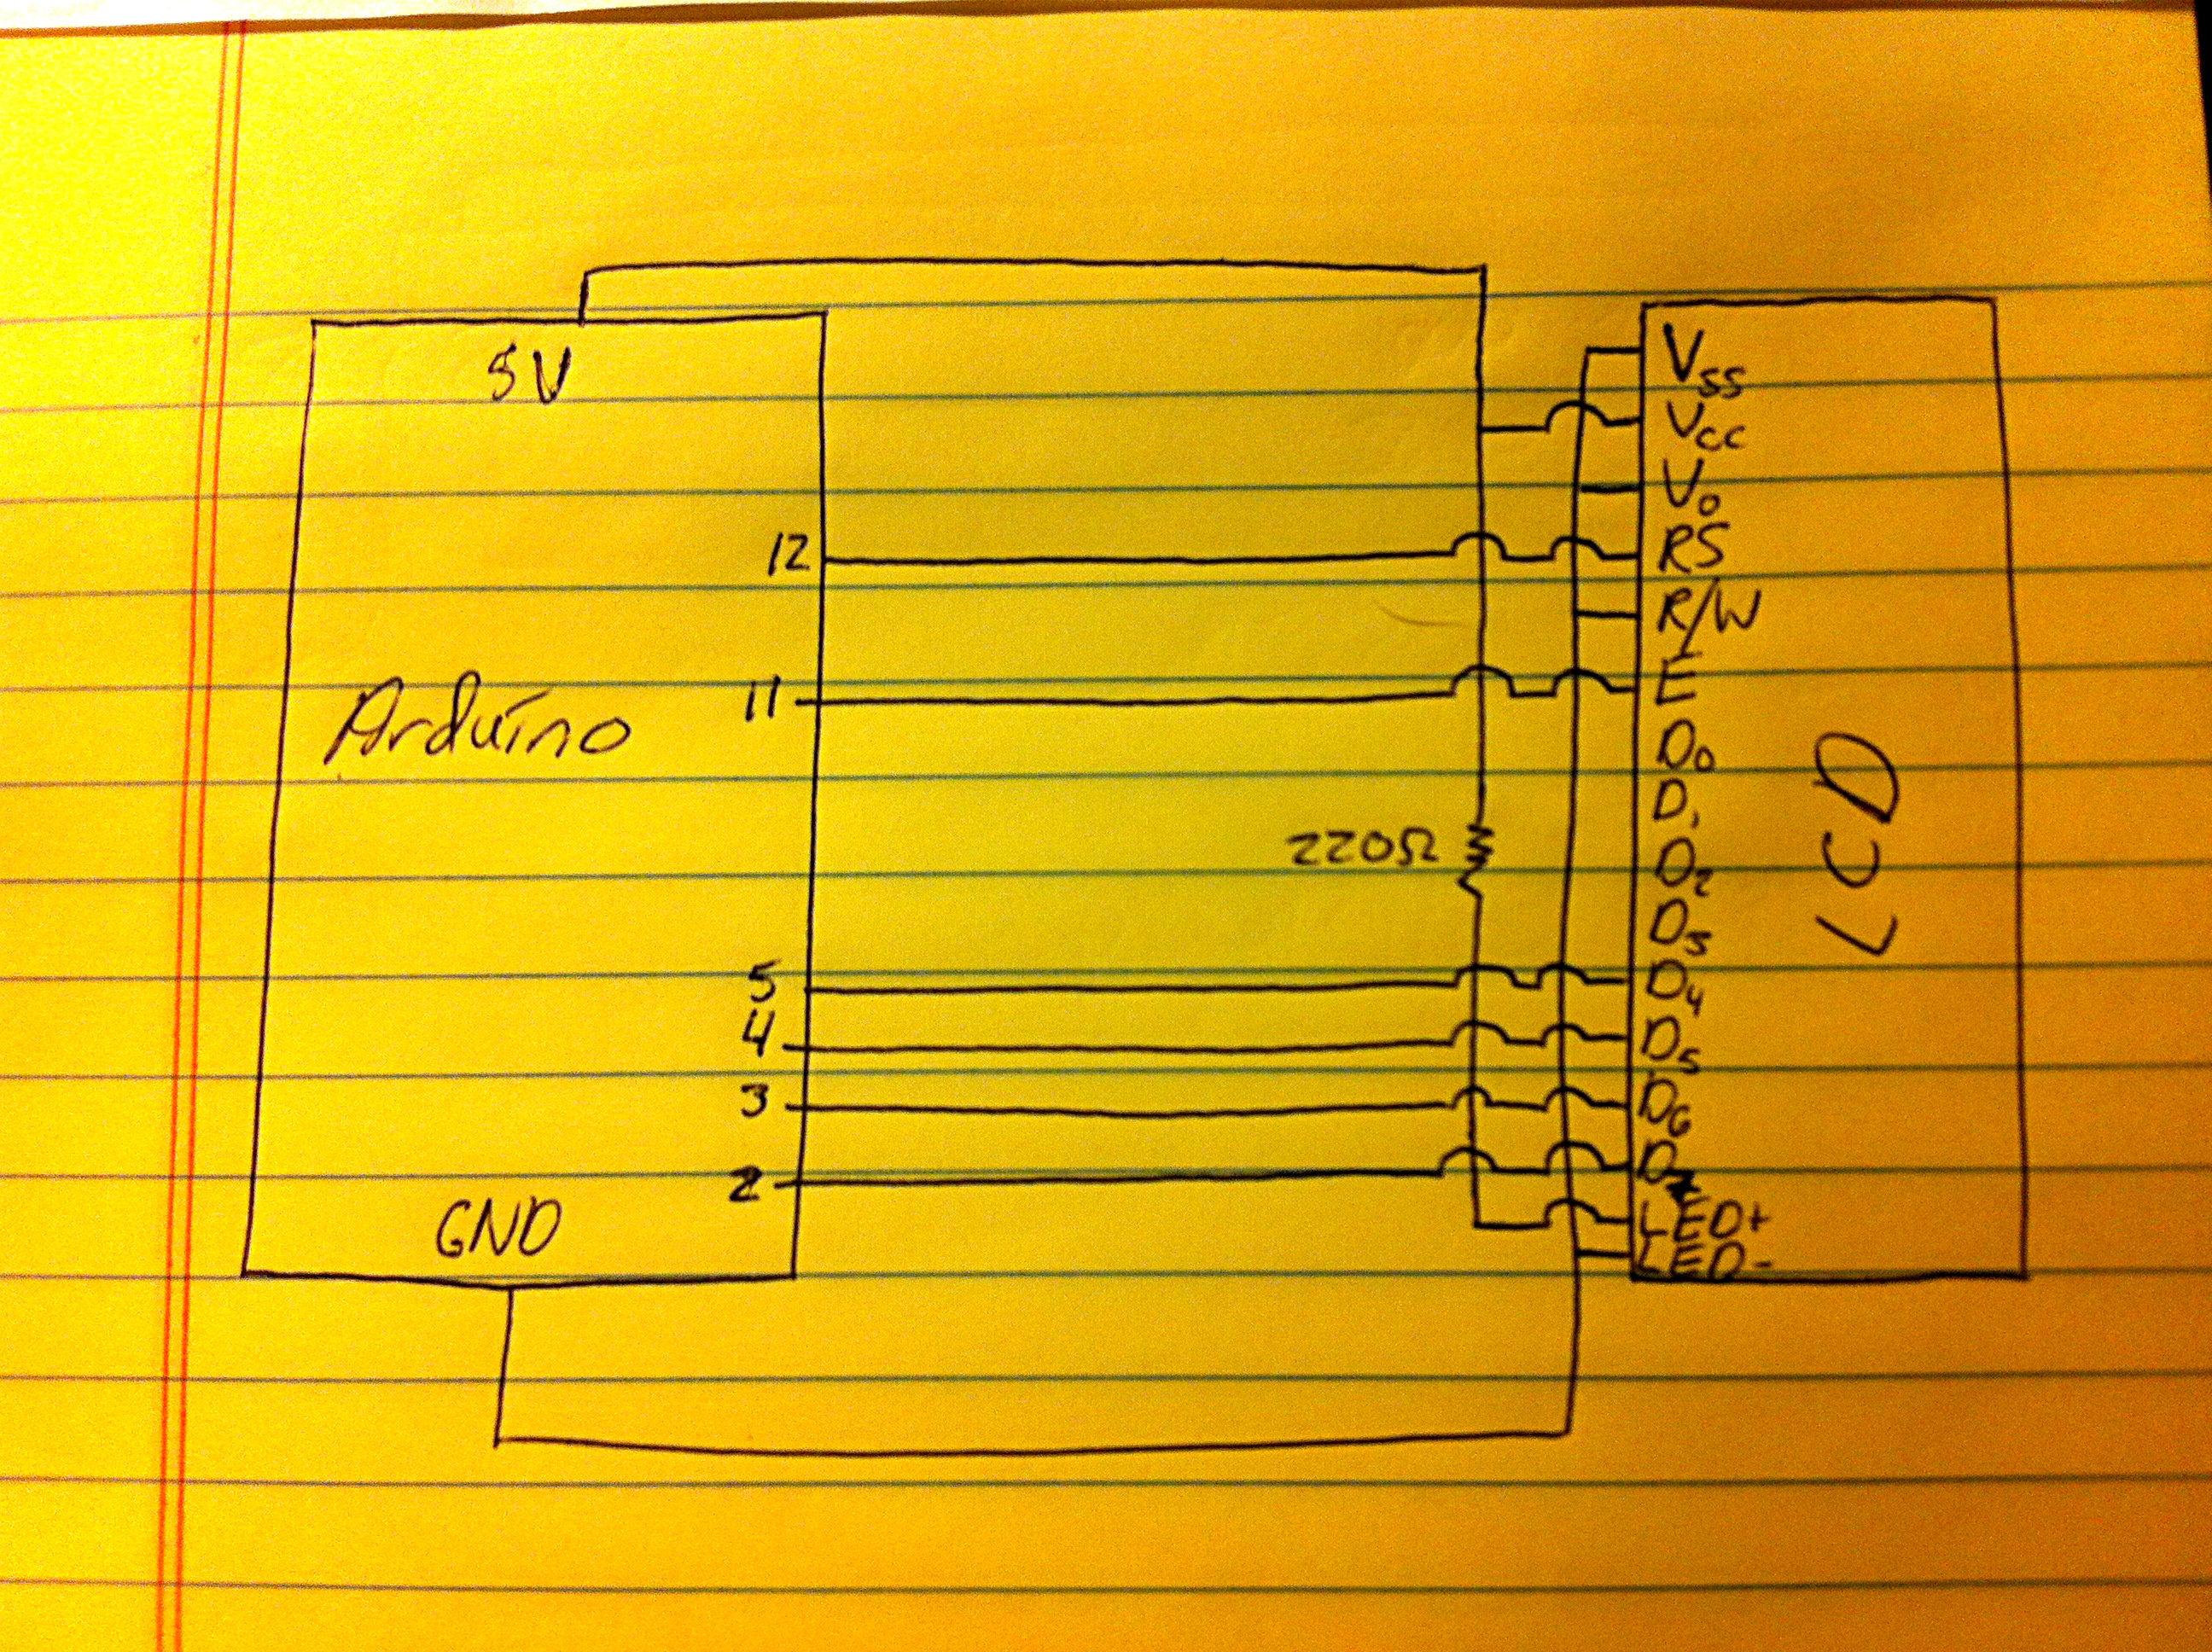 Lcm1602c Lcd Screen Wiring Diagram 34 Images Arduino 59750 Schematic How To Build A Custom Timer Clock And Learn In The Process